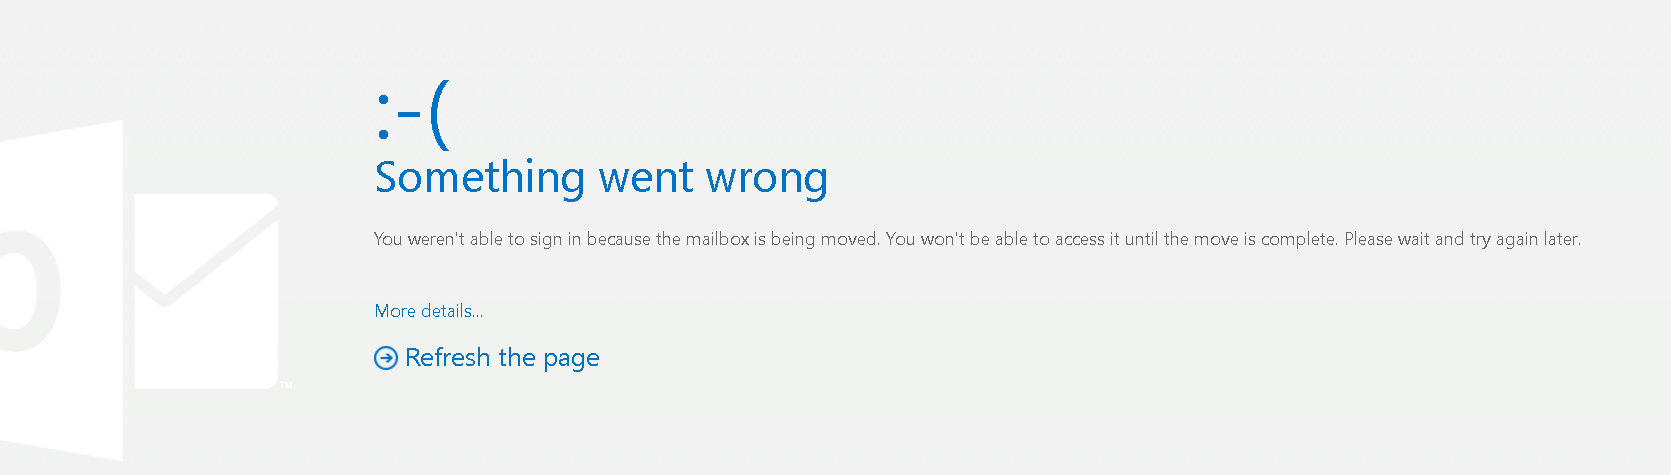 Outlook. Com experiencing issues, users unable to access mail - onmsft. Com - april 24, 2017